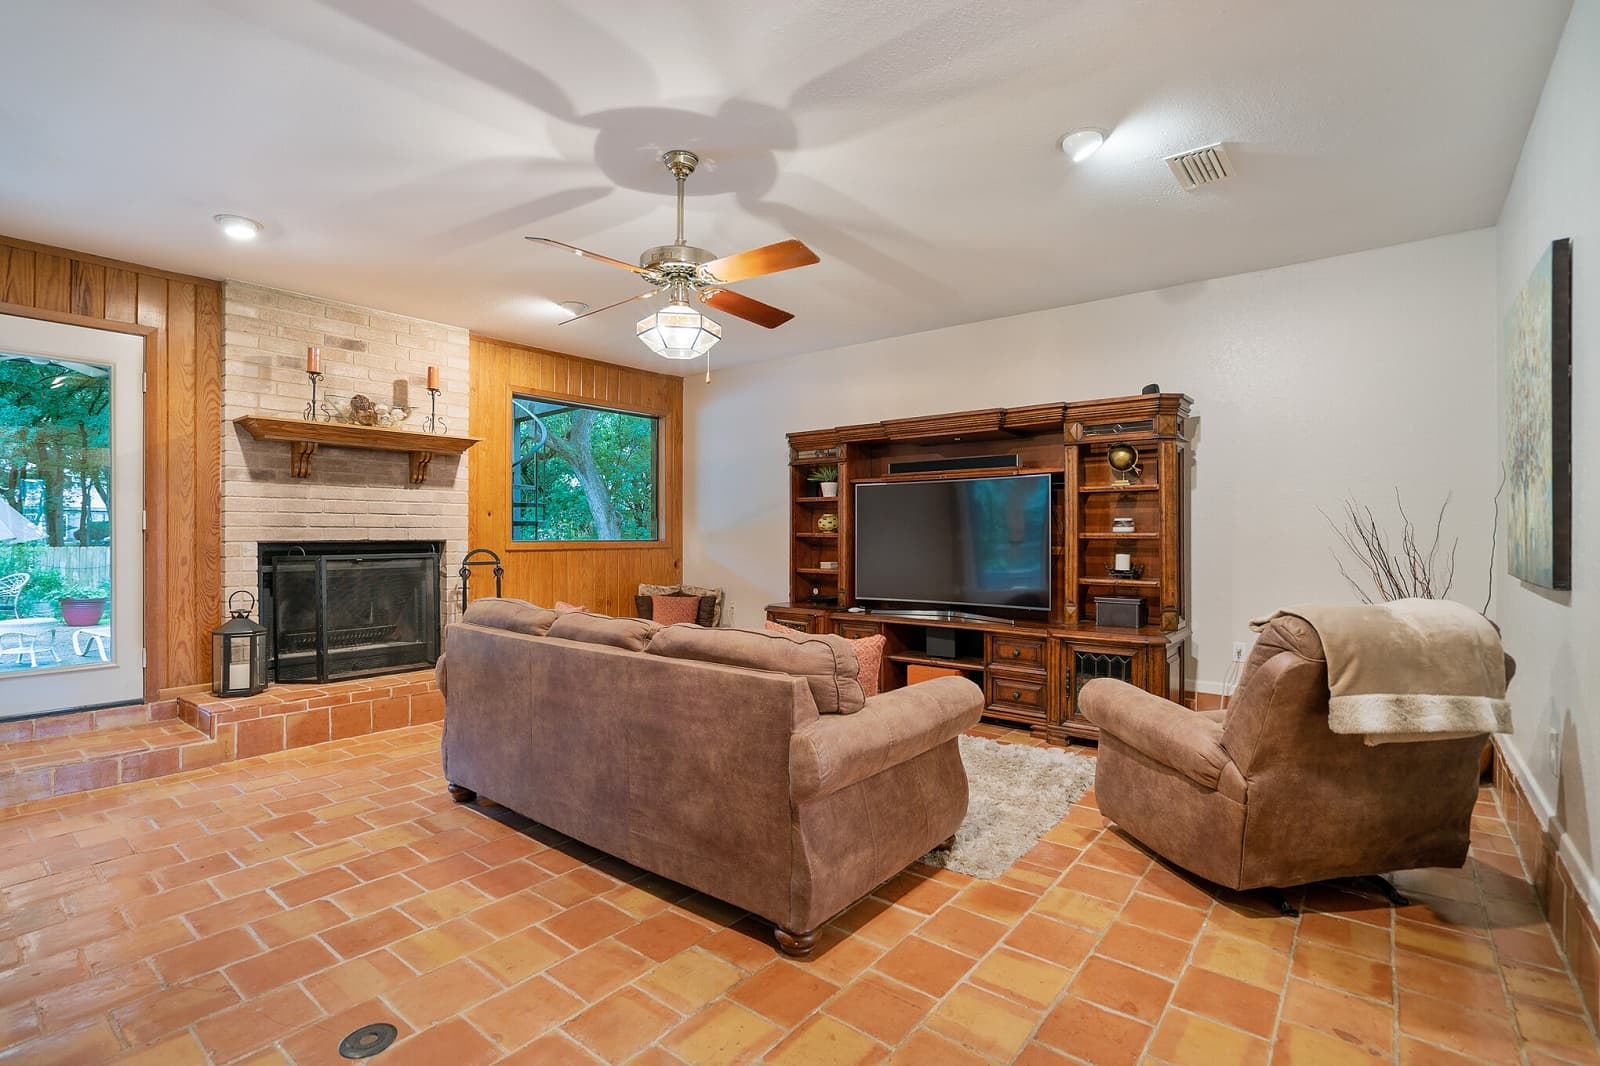 Real Estate Photography in Seguin - TX - Living Area View